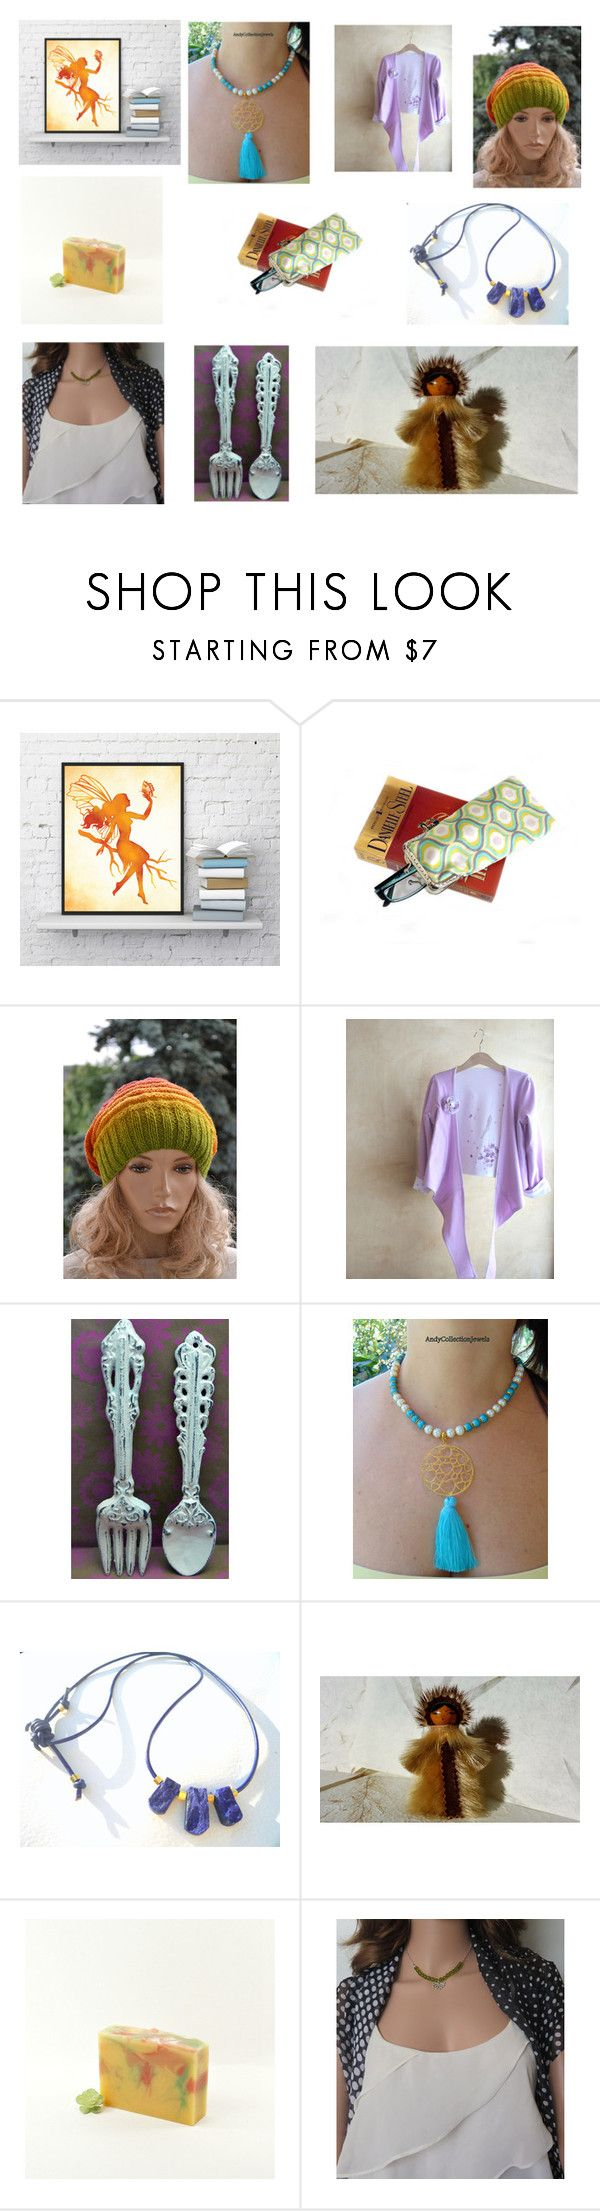 Gifts for women by luckystanlv on Polyvore